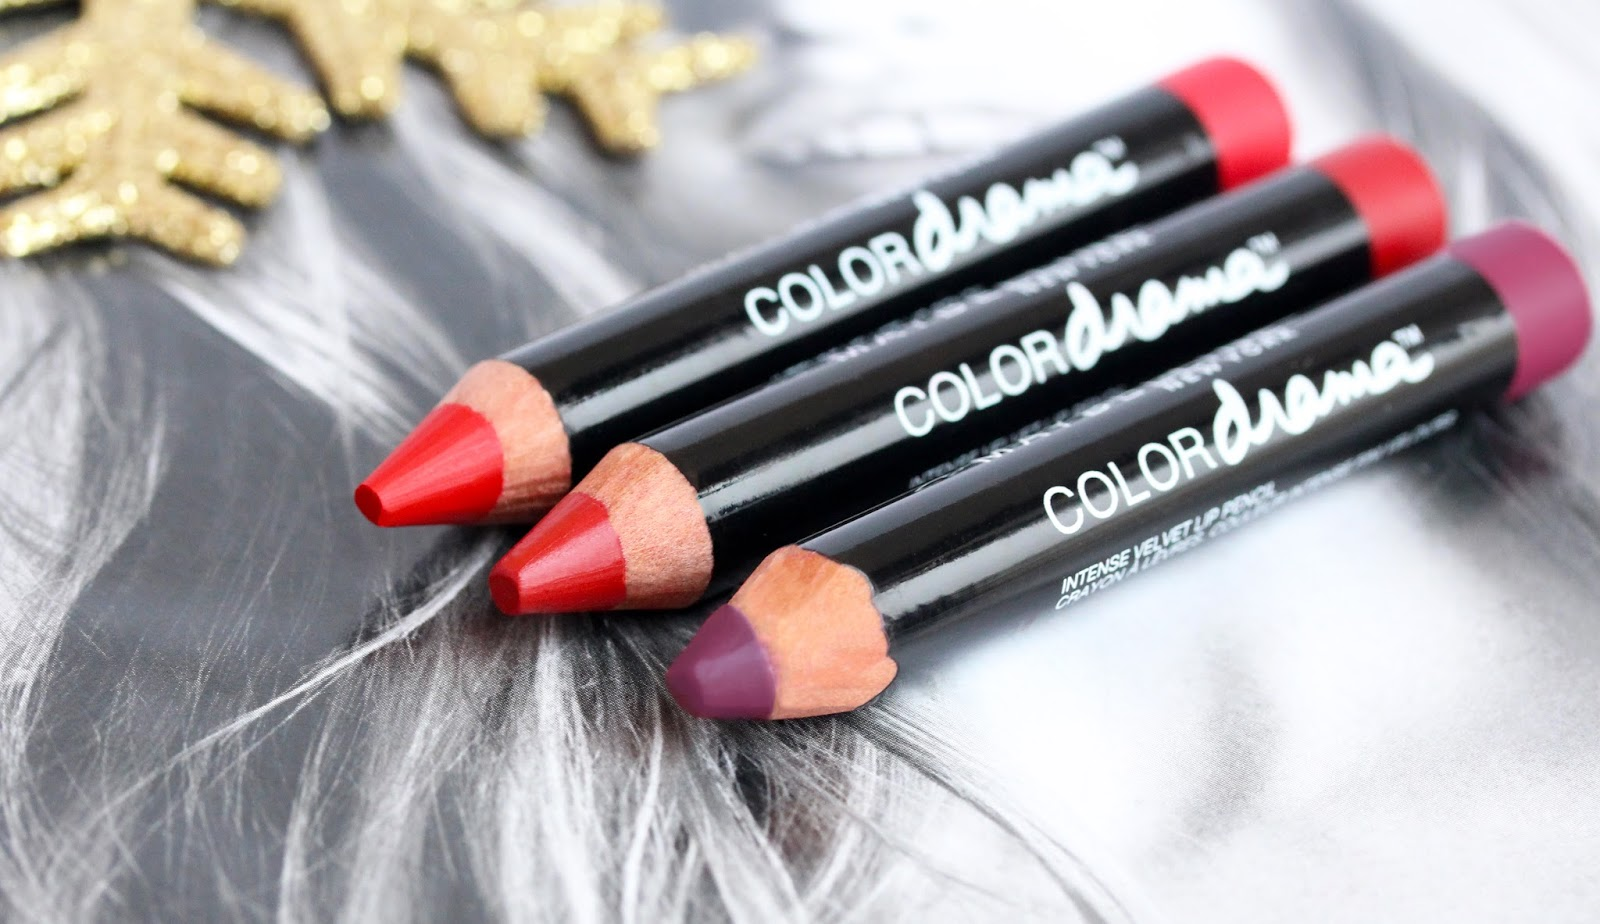 Maybelline Color Drama Velvet Lip Pencils in Berry Much, Light It Up and Red Essentials